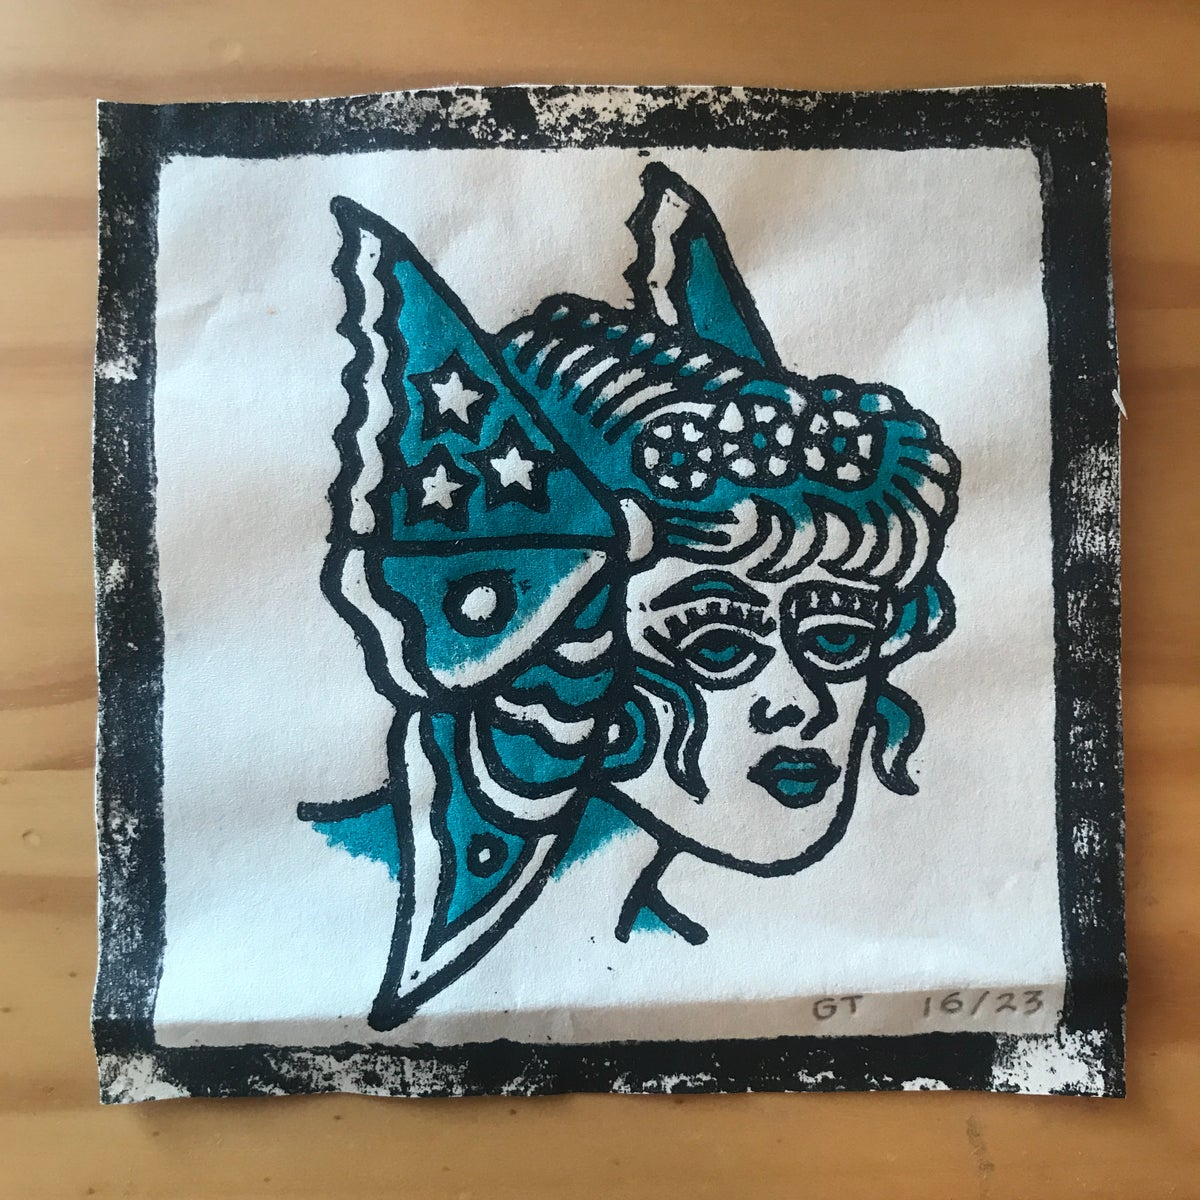 Image of Butterfly lady head woodcut print - 16/23